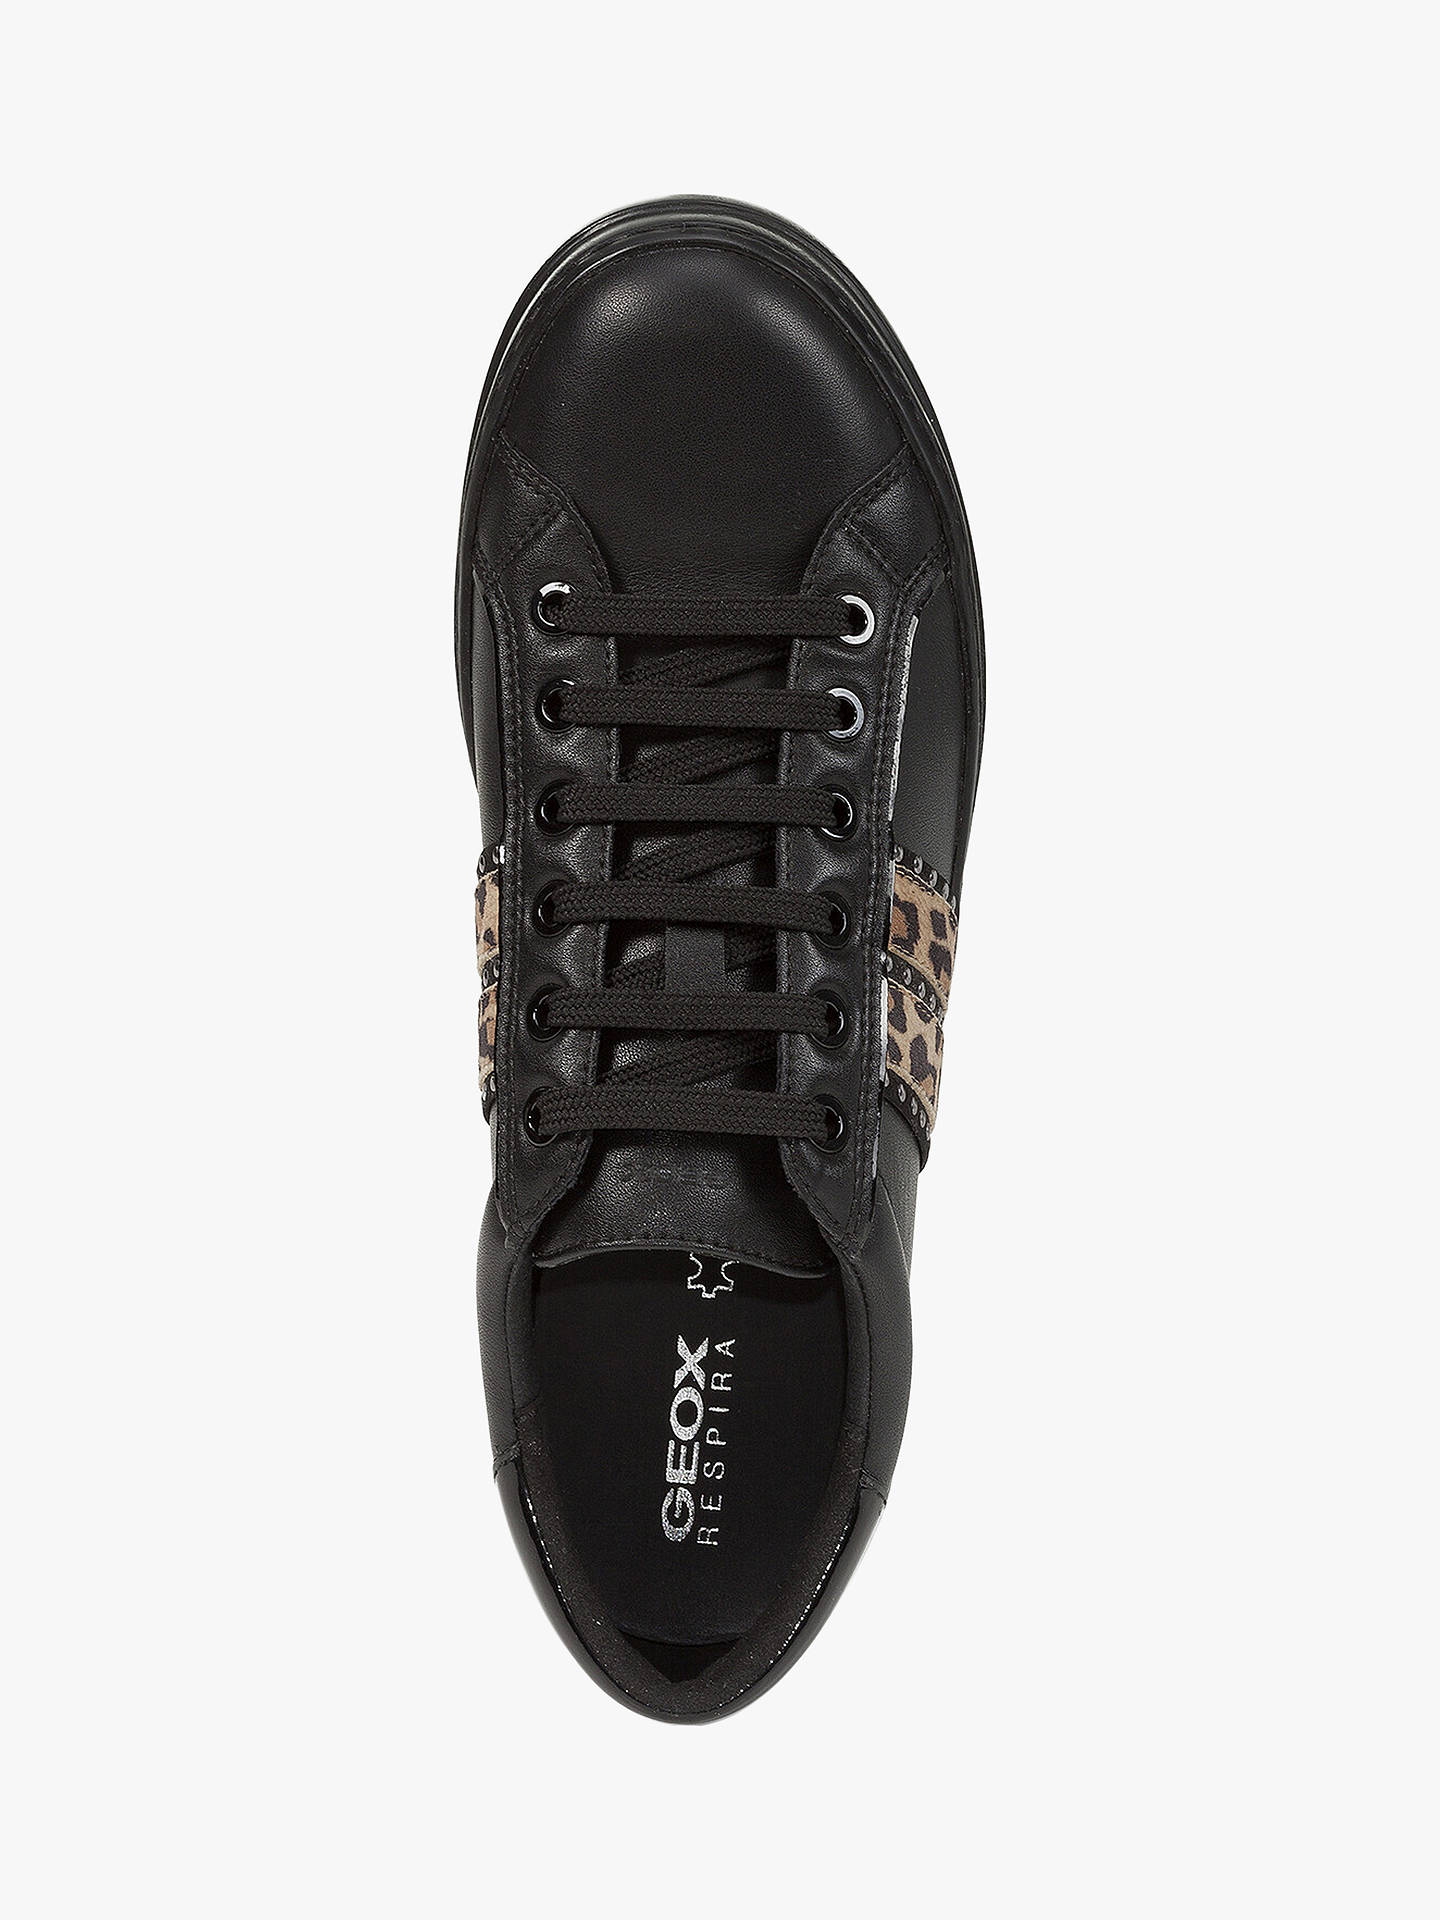 Buy Geox Women's Pontoise Leopard Print Stud Trainers, Black, 6 Online at johnlewis.com